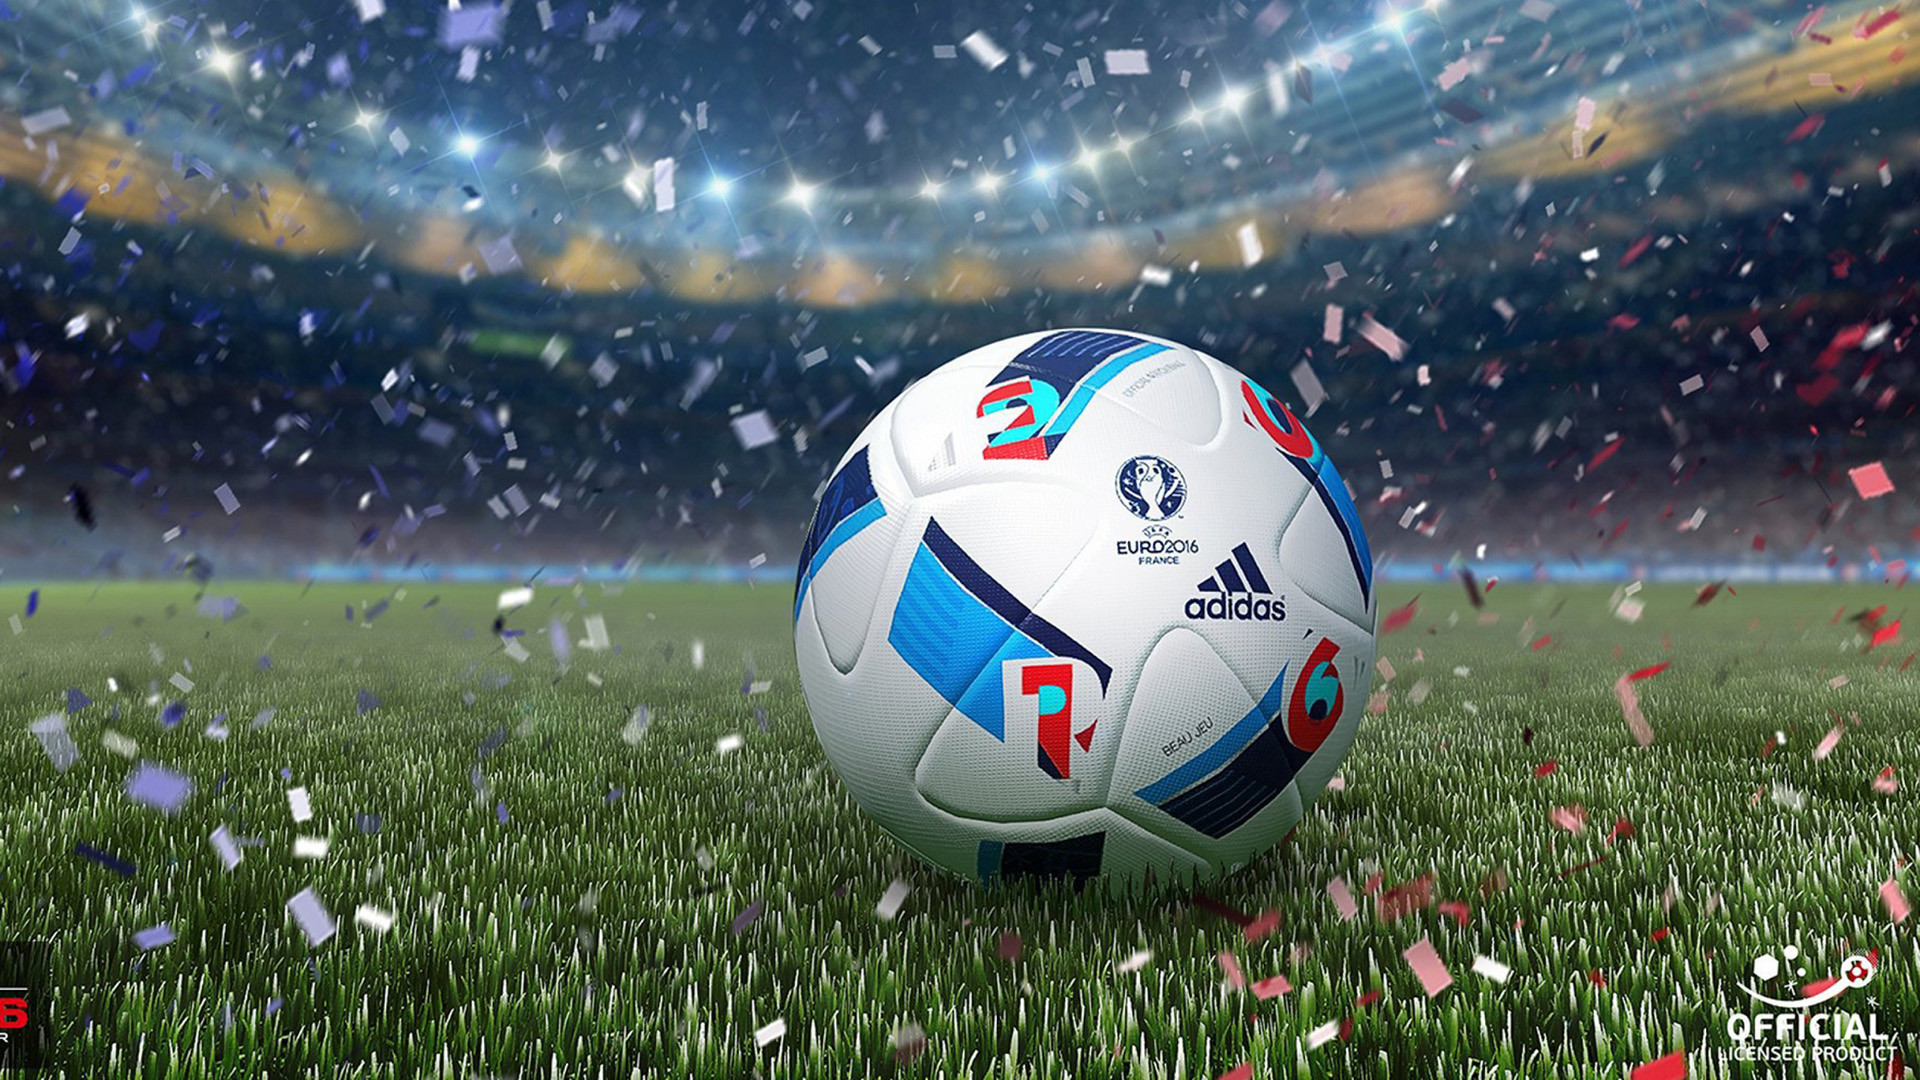 70 Soccer Ball Wallpapers On Wallpaperplay   Soccer Ball Hd 1920x1080